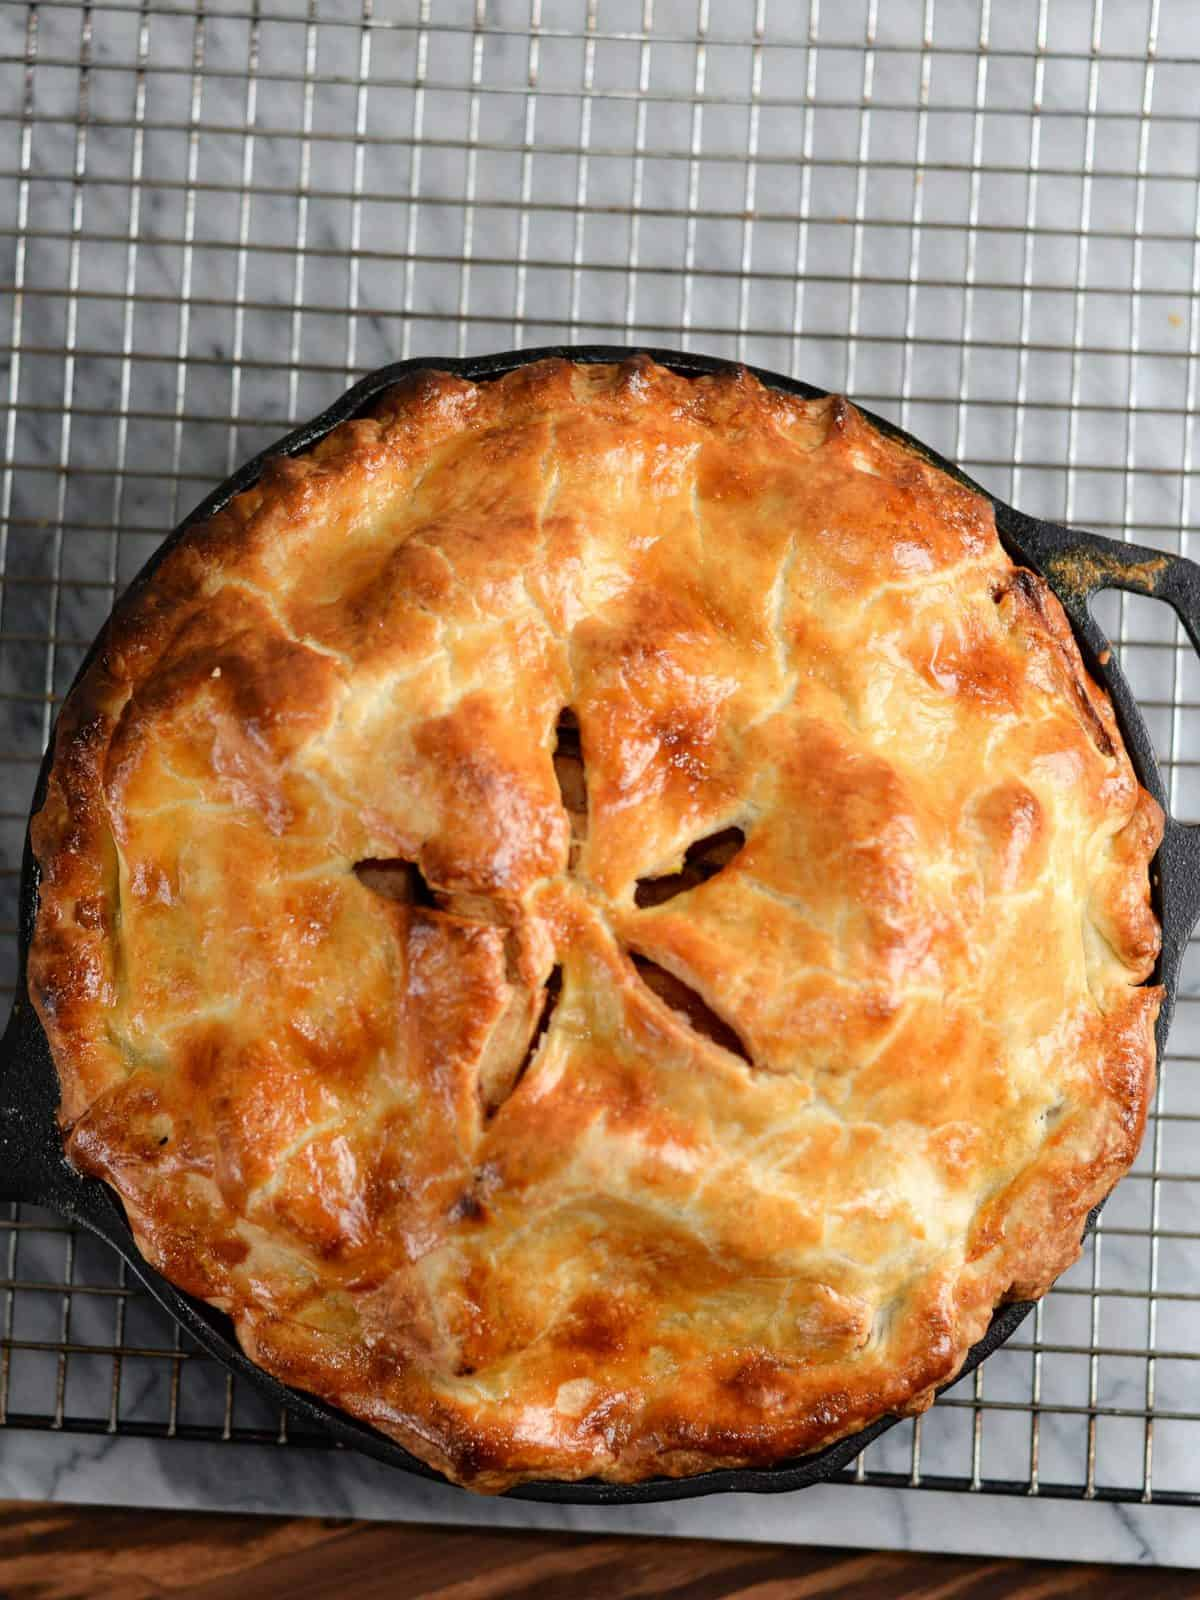 apple pie baked in a cast iron skillet cooling on a wire baking rack.